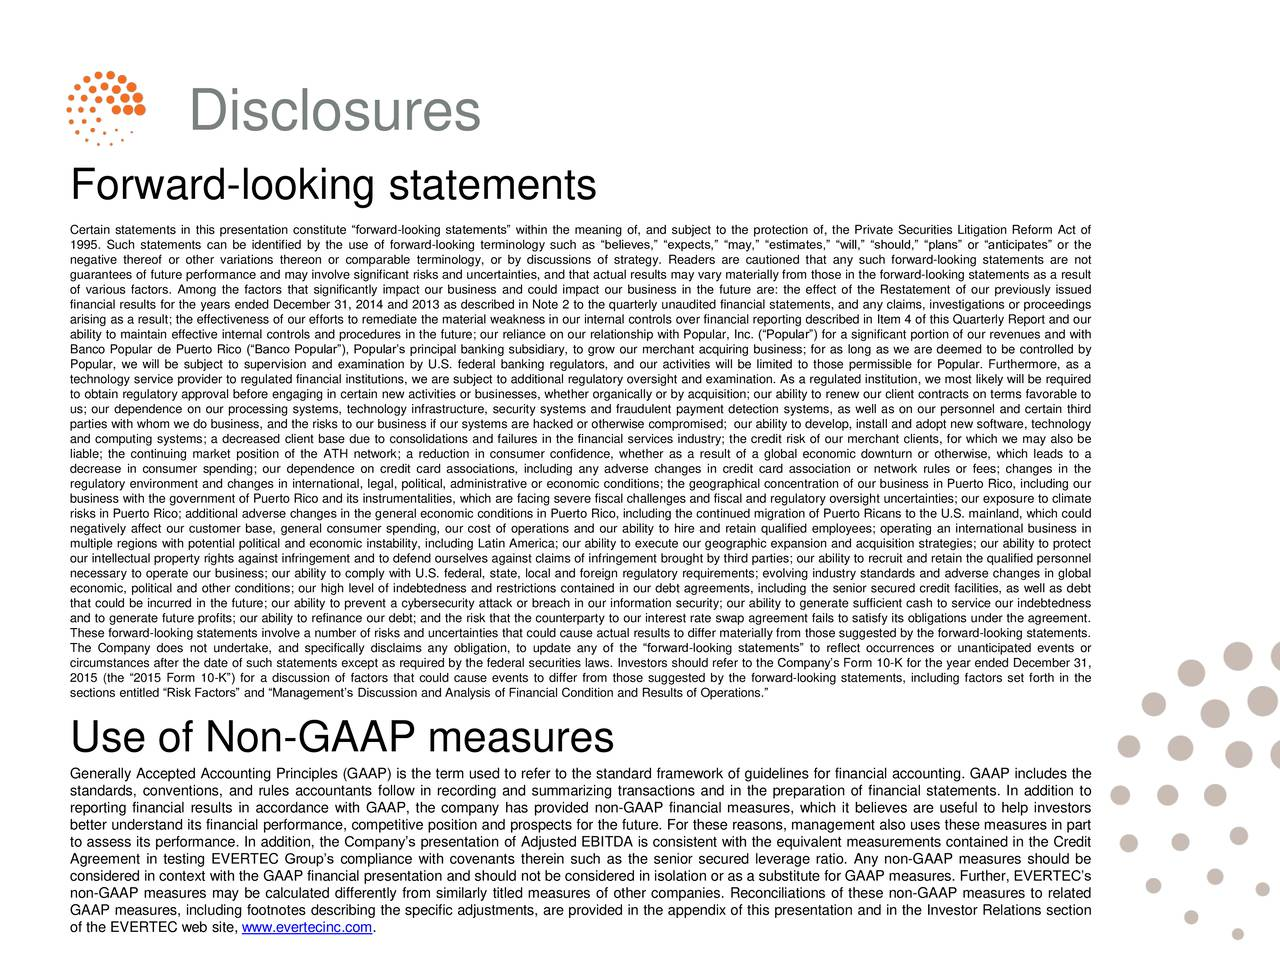 Forward-looking statements Certain statements in this presentation constitute forward-looking statements within the meaning of, and subject to the protection of, the Private Securities Litigation Reform Act of 1995. Such statements can be identified by the use of forward-looking terminology such as believes, expects, may, estimates, will, should, plans or anticipates or the negative thereof or other variations thereon or comparable terminology, or by discussions of strategy. Readers are cautioned that any such forward-looking statements are not guarantees of future performance and may involve significant risks and uncertainties, and that actual results may vary materially from those in the forward-looking statements as a result of various factors. Among the factors that significantly impact our business and could impact our business in the future are: the effect of the Restatement of our previously issued financial results for the years ended December 31, 2014 and 2013 as described in Note 2 to the quarterly unaudited financial statements, and any claims, investigations or proceedings arising as a result; the effectiveness of our efforts to remediate the material weakness in our internal controls over financial reporting described in Item 4 of this Quarterly Report and our ability to maintain effective internal controls and procedures in the future; our reliance on our relationship with Popular, Inc. (Popular) for a significant portion of our revenues and with Banco Popular de Puerto Rico (Banco Popular), Populars principal banking subsidiary, to grow our merchant acquiring business; for as long as we are deemed to be controlled by Popular, we will be subject to supervision and examination by U.S. federal banking regulators, and our activities will be limited to those permissible for Popular. Furthermore, as a technology service provider to regulated financial institutions, we are subject to additional regulatory oversight and examination. As a regulated institution